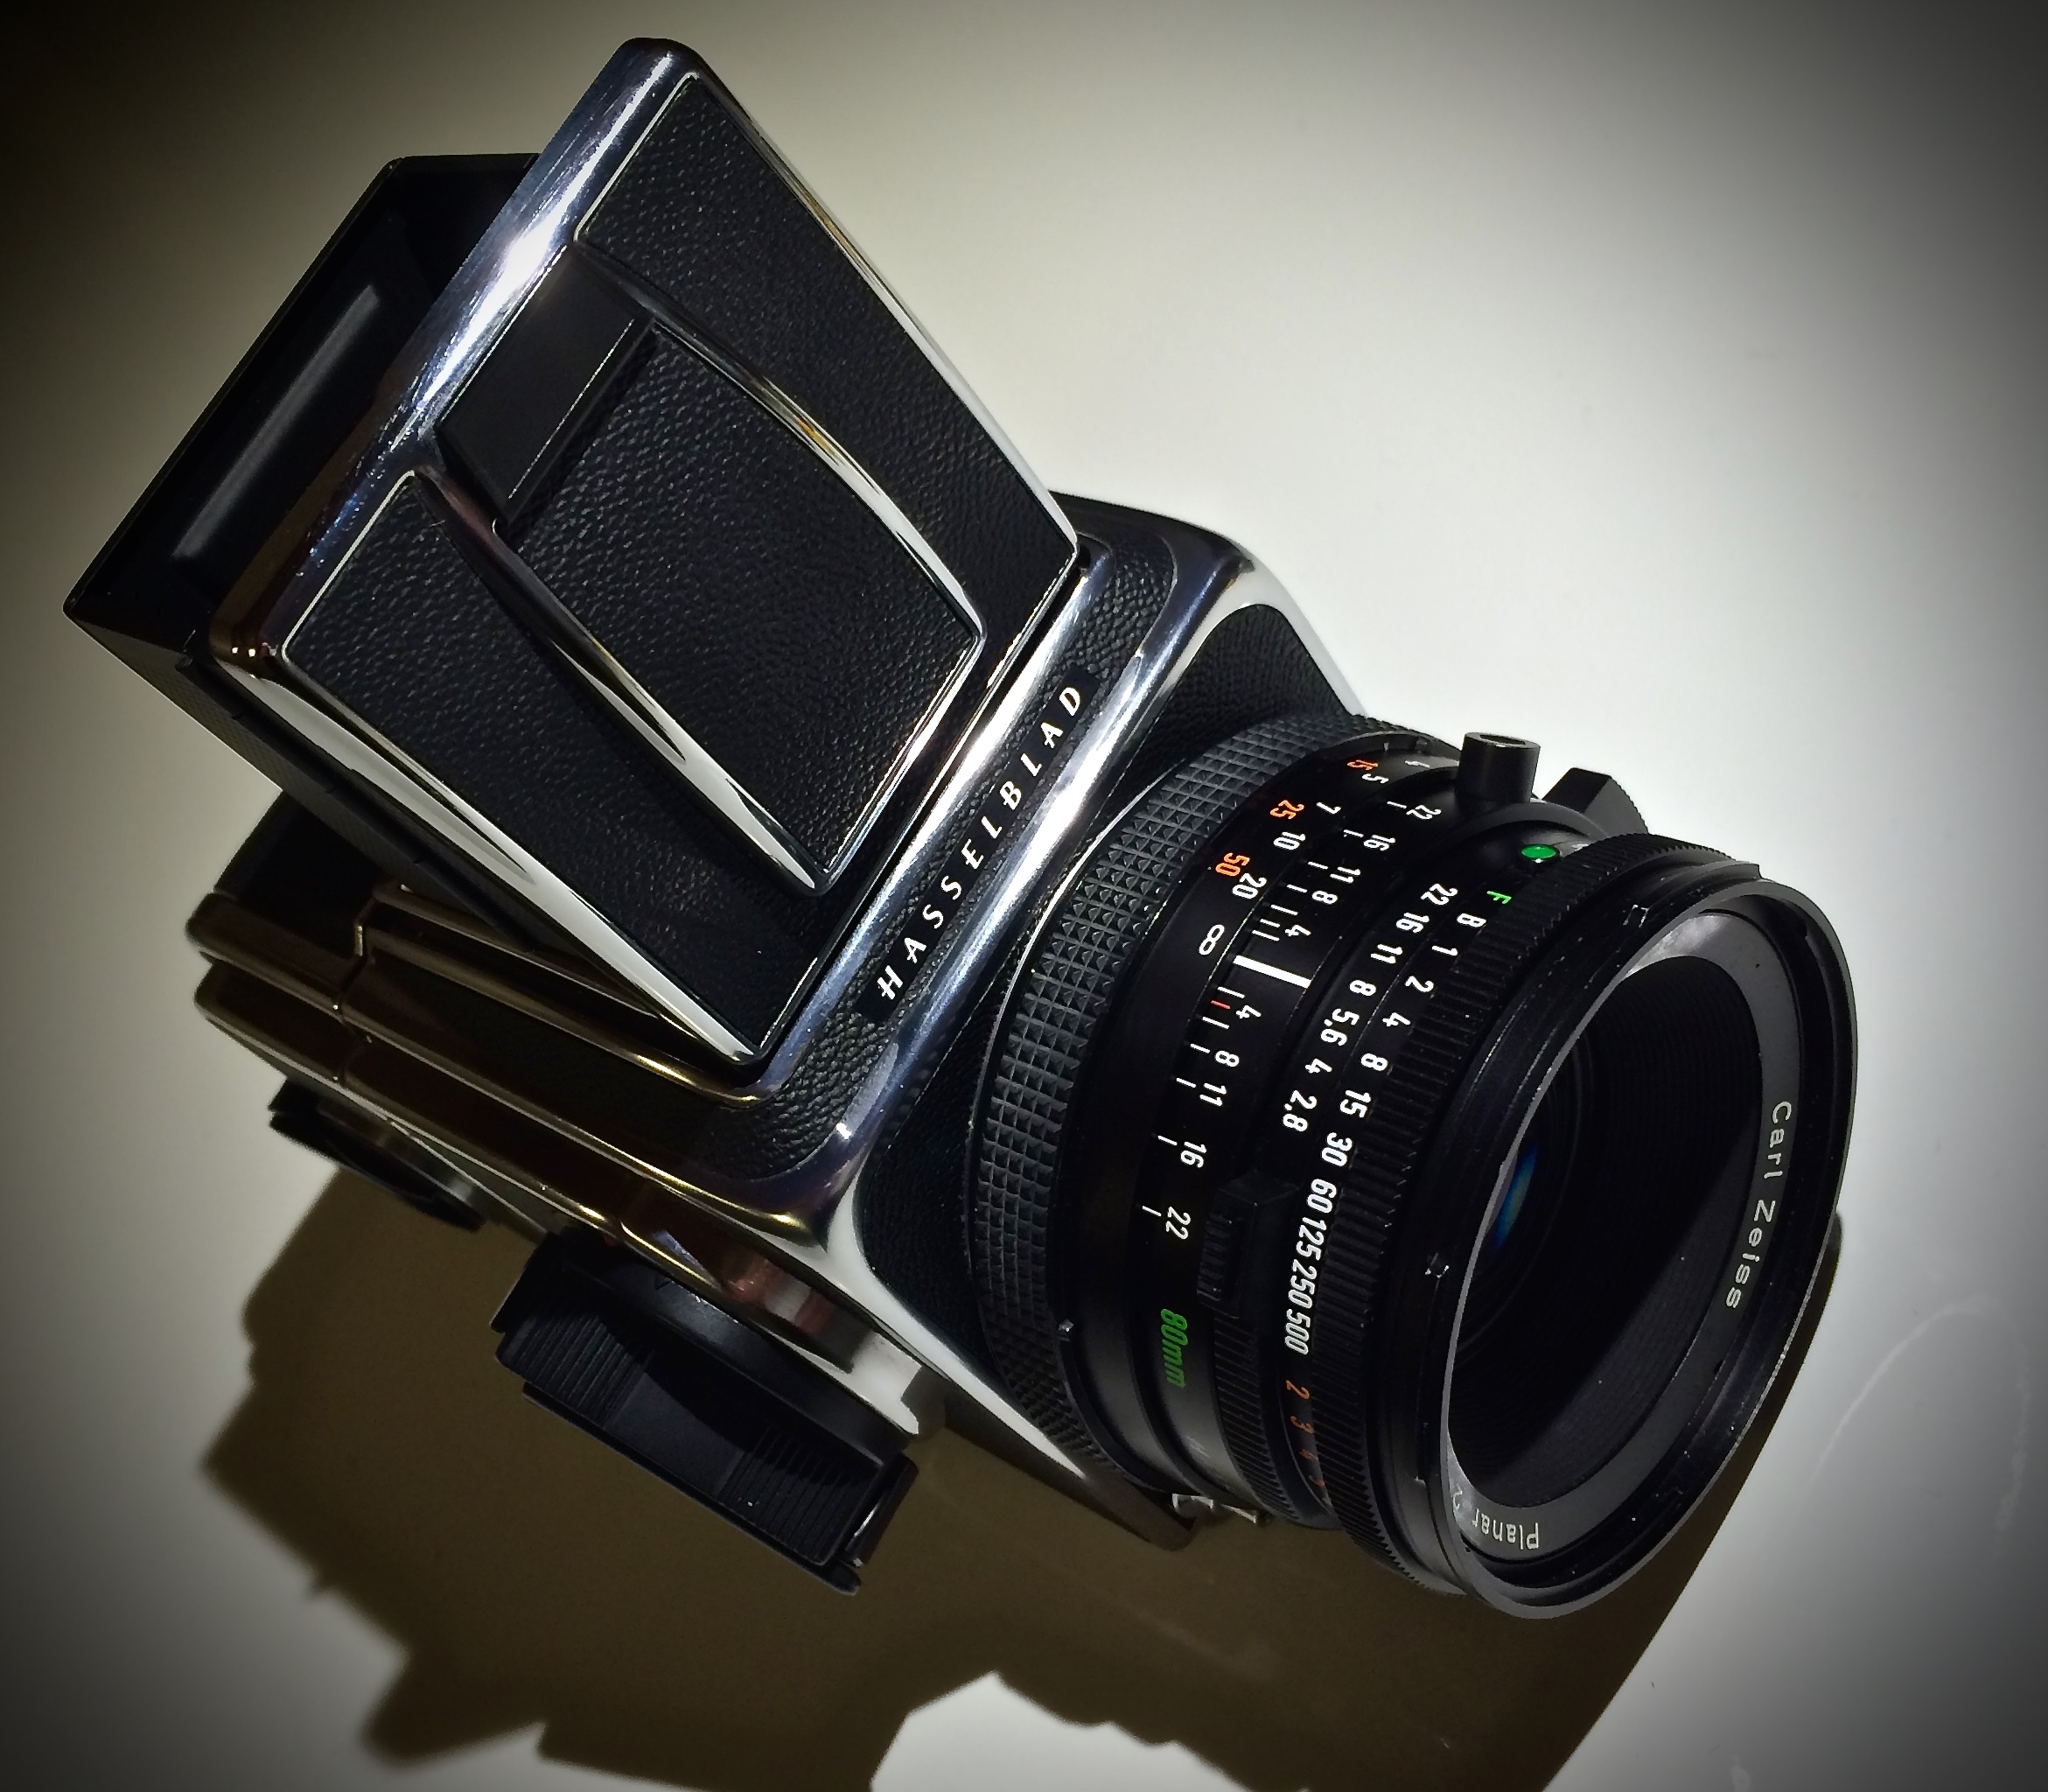 Hasselblad 500/cm - Superb build quality and tack sharp Zeiss glass makes the Hassey a mechanical medium format camera you must try. Note: carrying one around all day is a workout! These are big, heavy cameras!